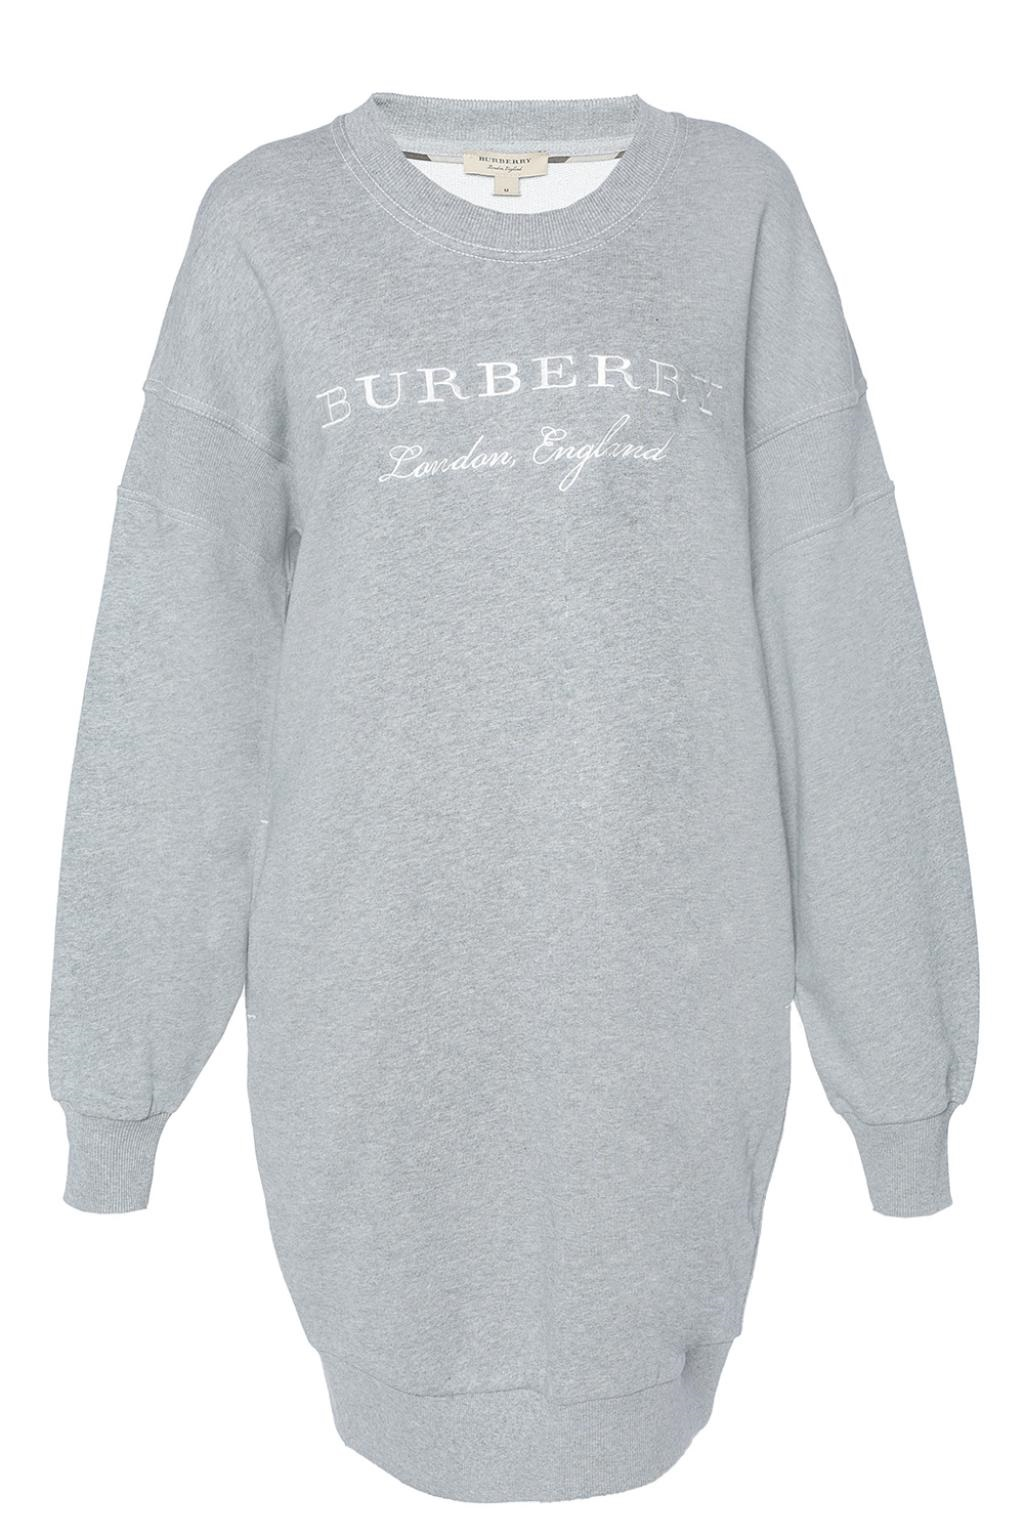 Burberry Soure Embroidered Cotton-jersey Sweatshirt Dress In Grey